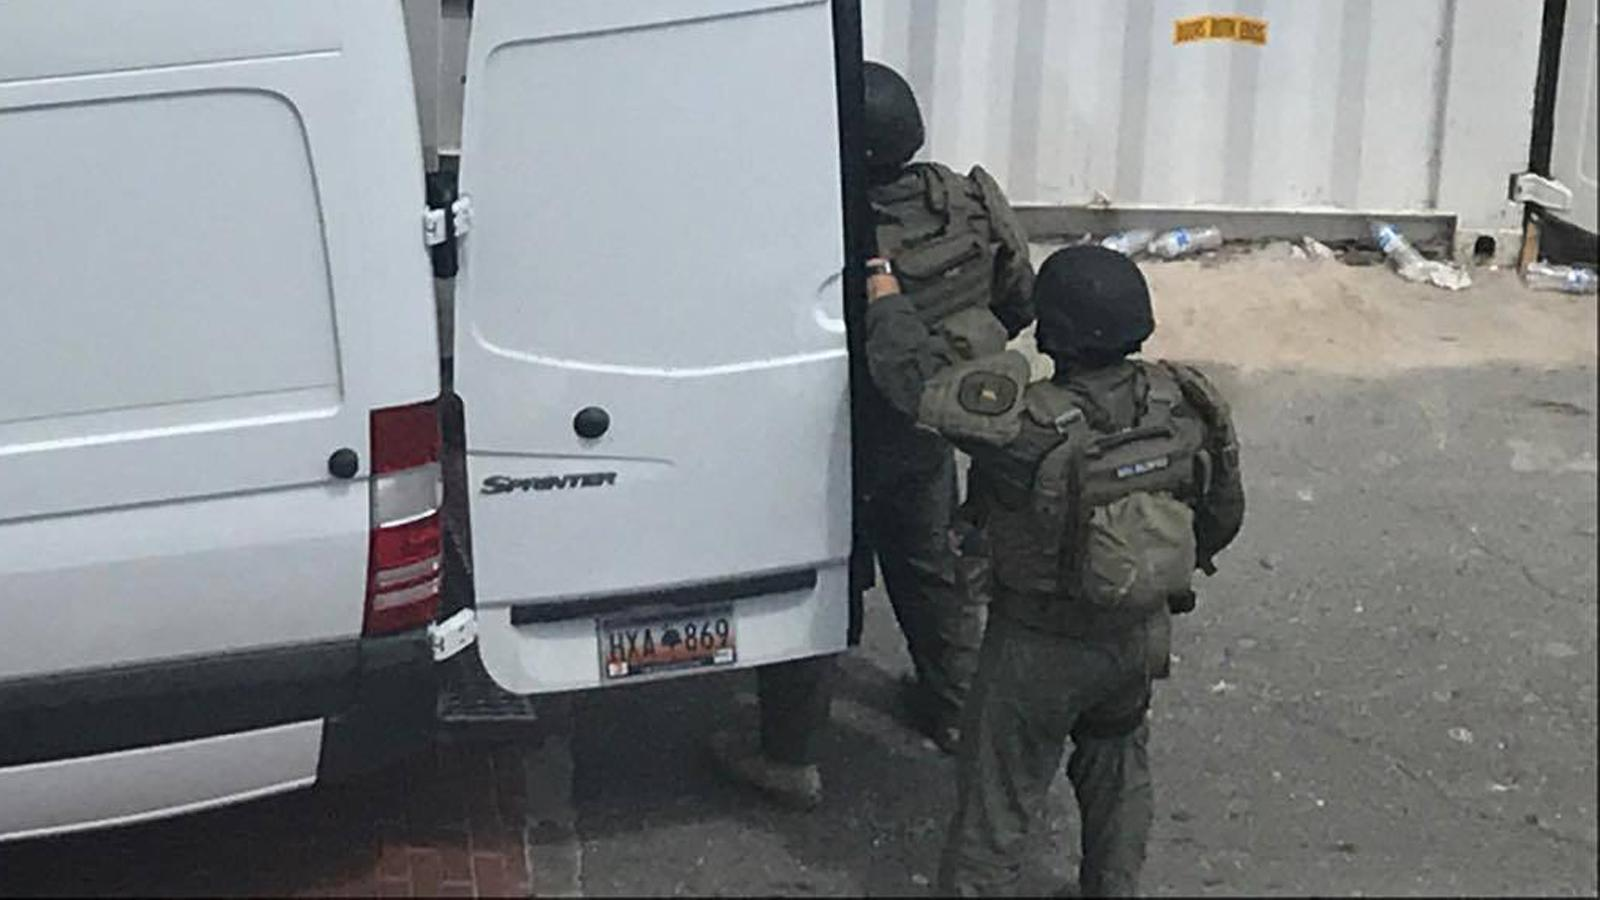 Armored SWAT team members exit a van near the scene of Thursday's shooting. (Provided/Robbie Kimbrough)